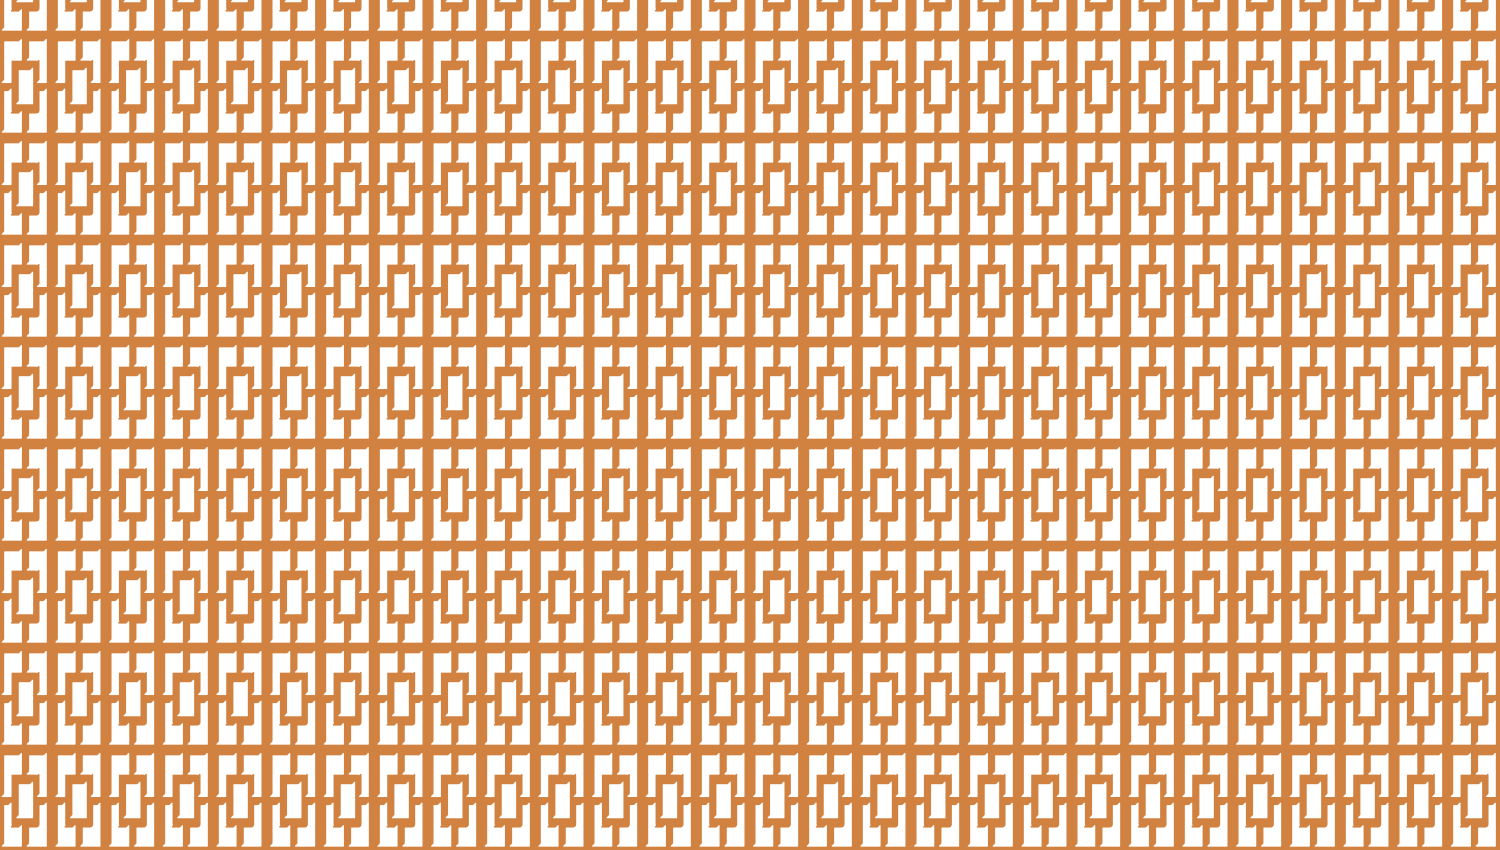 Parasoleil™ Cranbrook© pattern displayed with a ochre color overlay